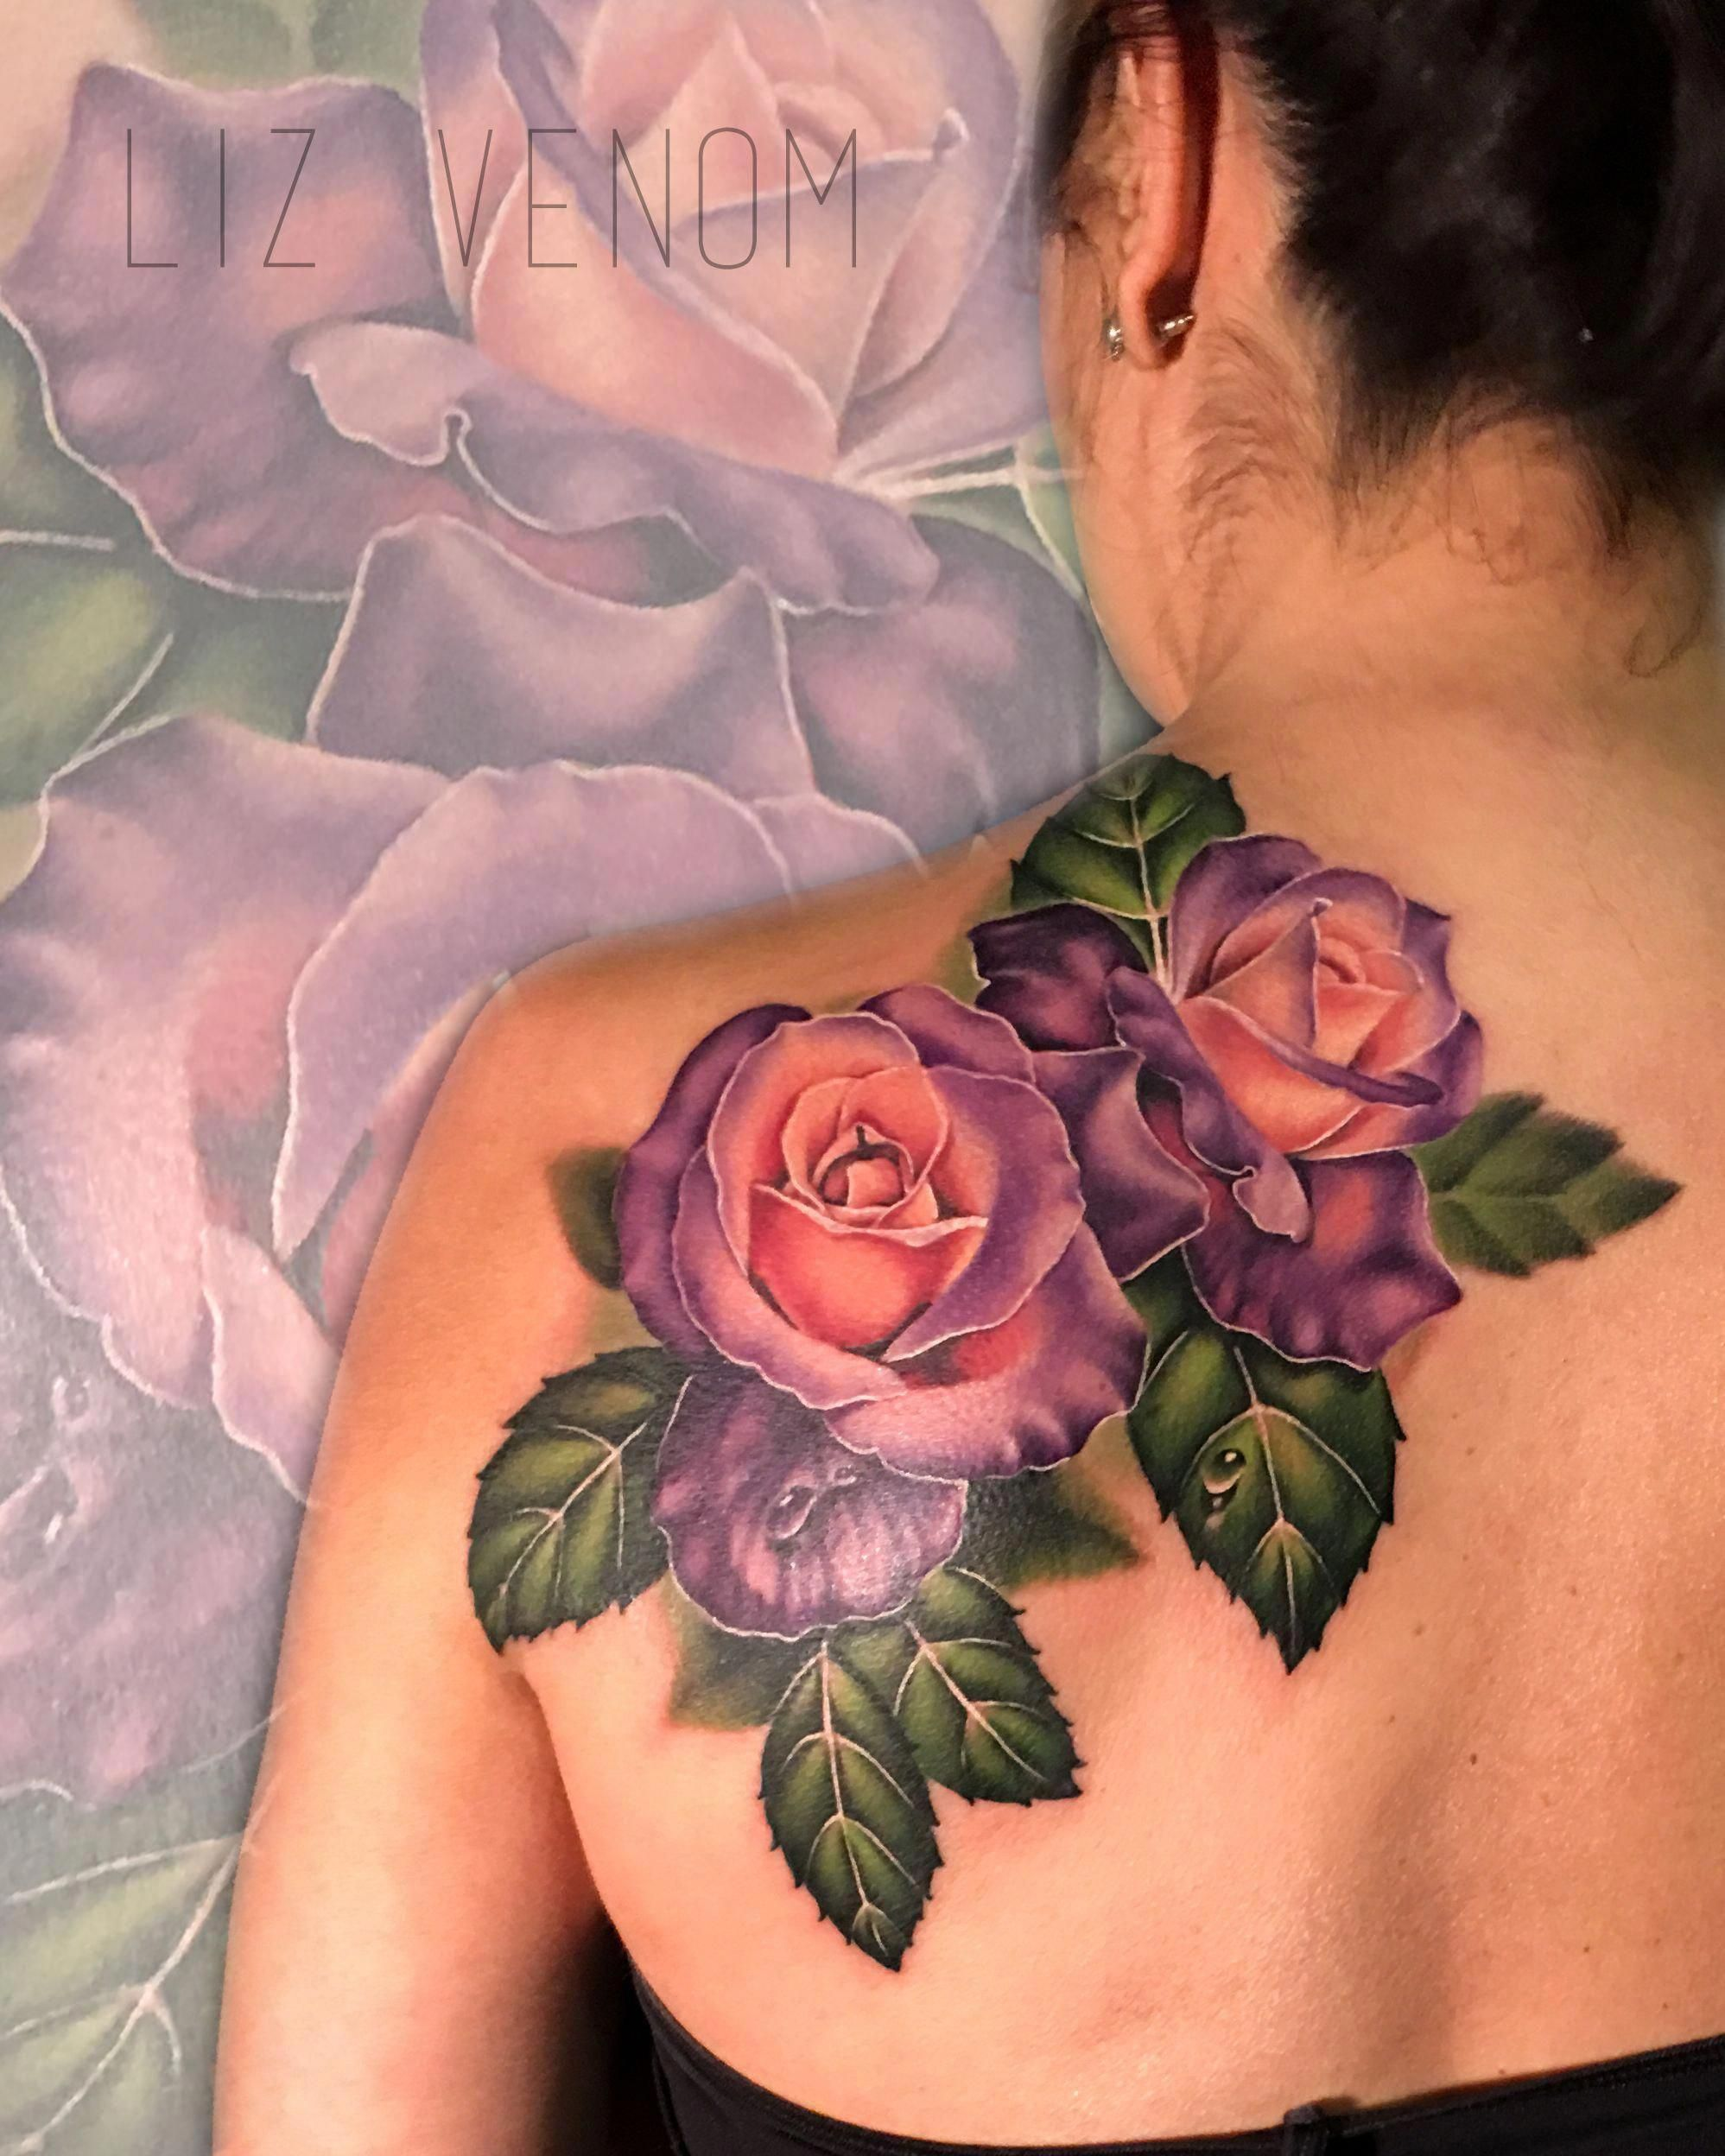 d12997a46 A lovely double rose tattoo from the exceptional Liz Venom at Bombshell  tattoo, Edmonton.